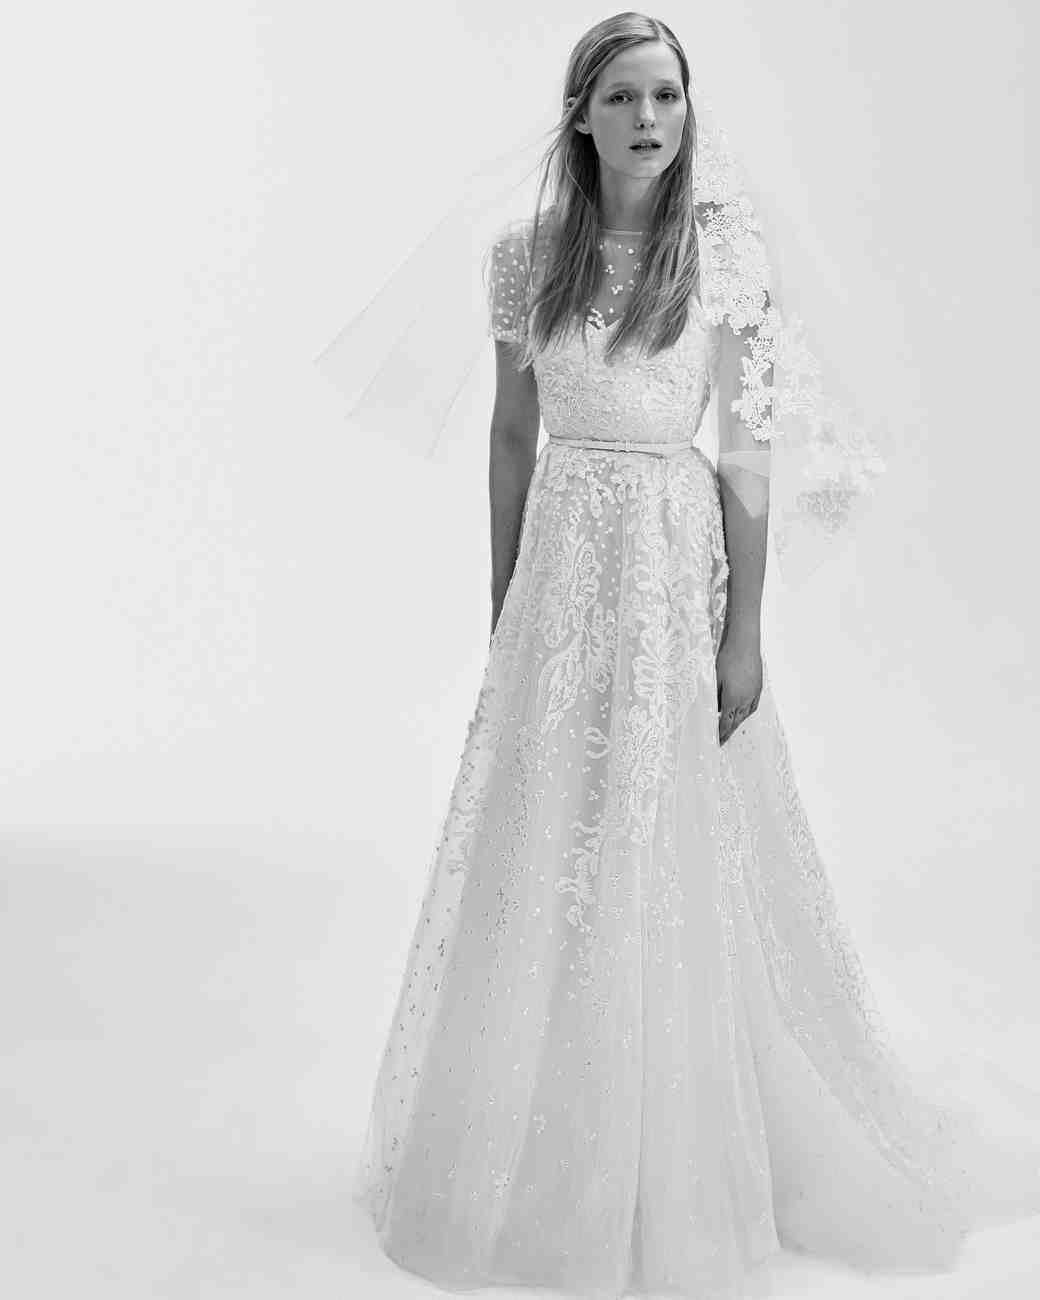 Elie saab spring 2017 wedding dress collection martha stewart elie saab spring 2017 wedding dress collection martha stewart weddings junglespirit Choice Image